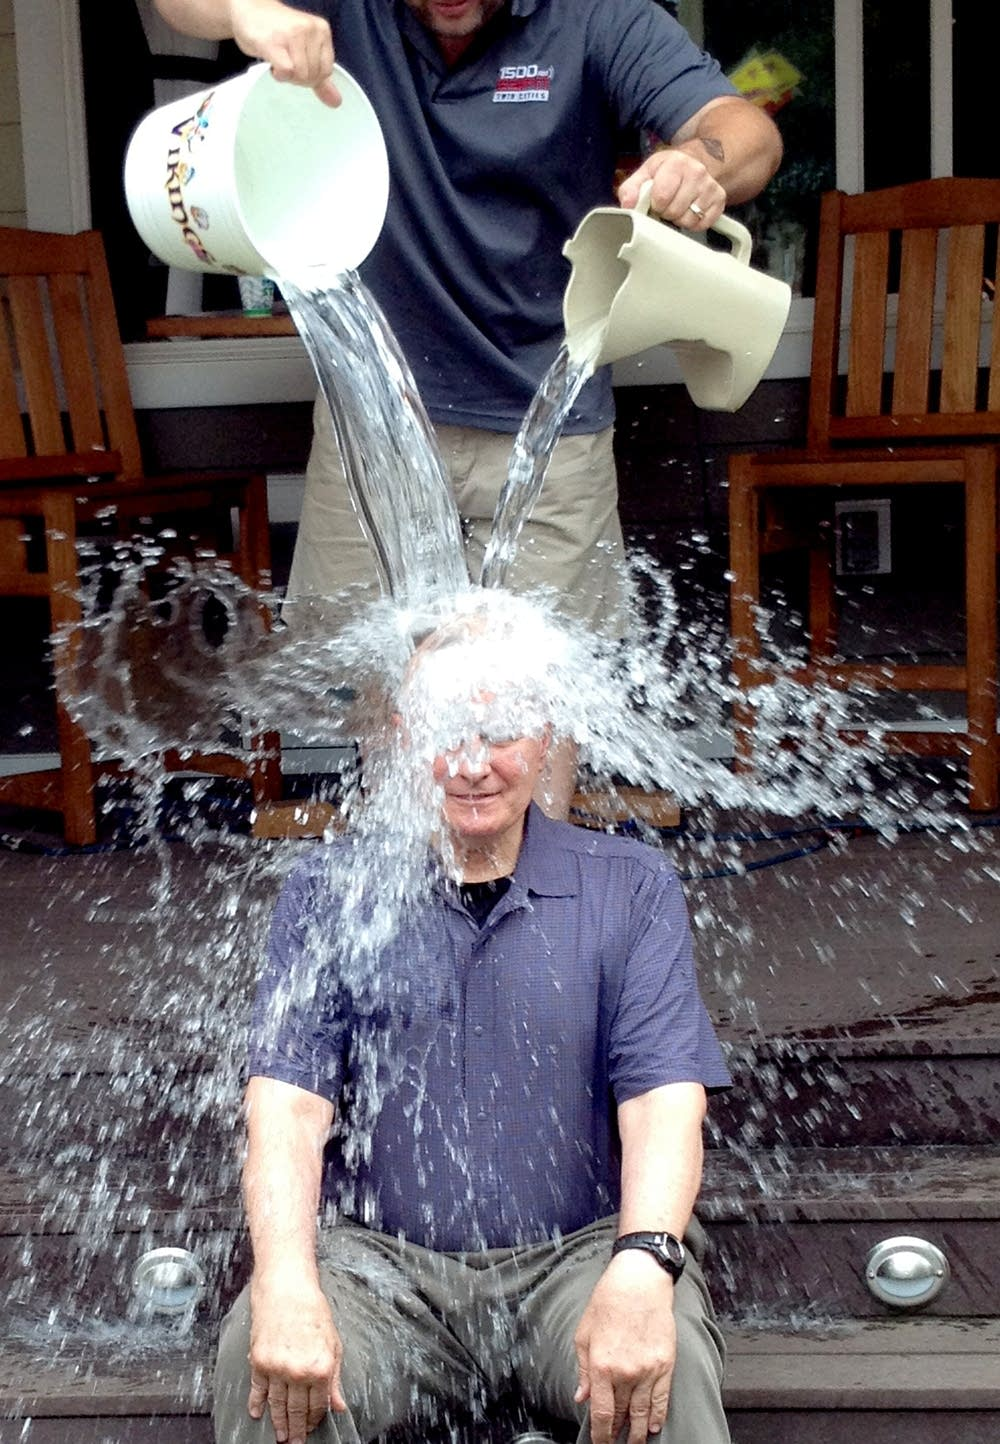 Gov. Dayton took the Ice Bucket Challenge